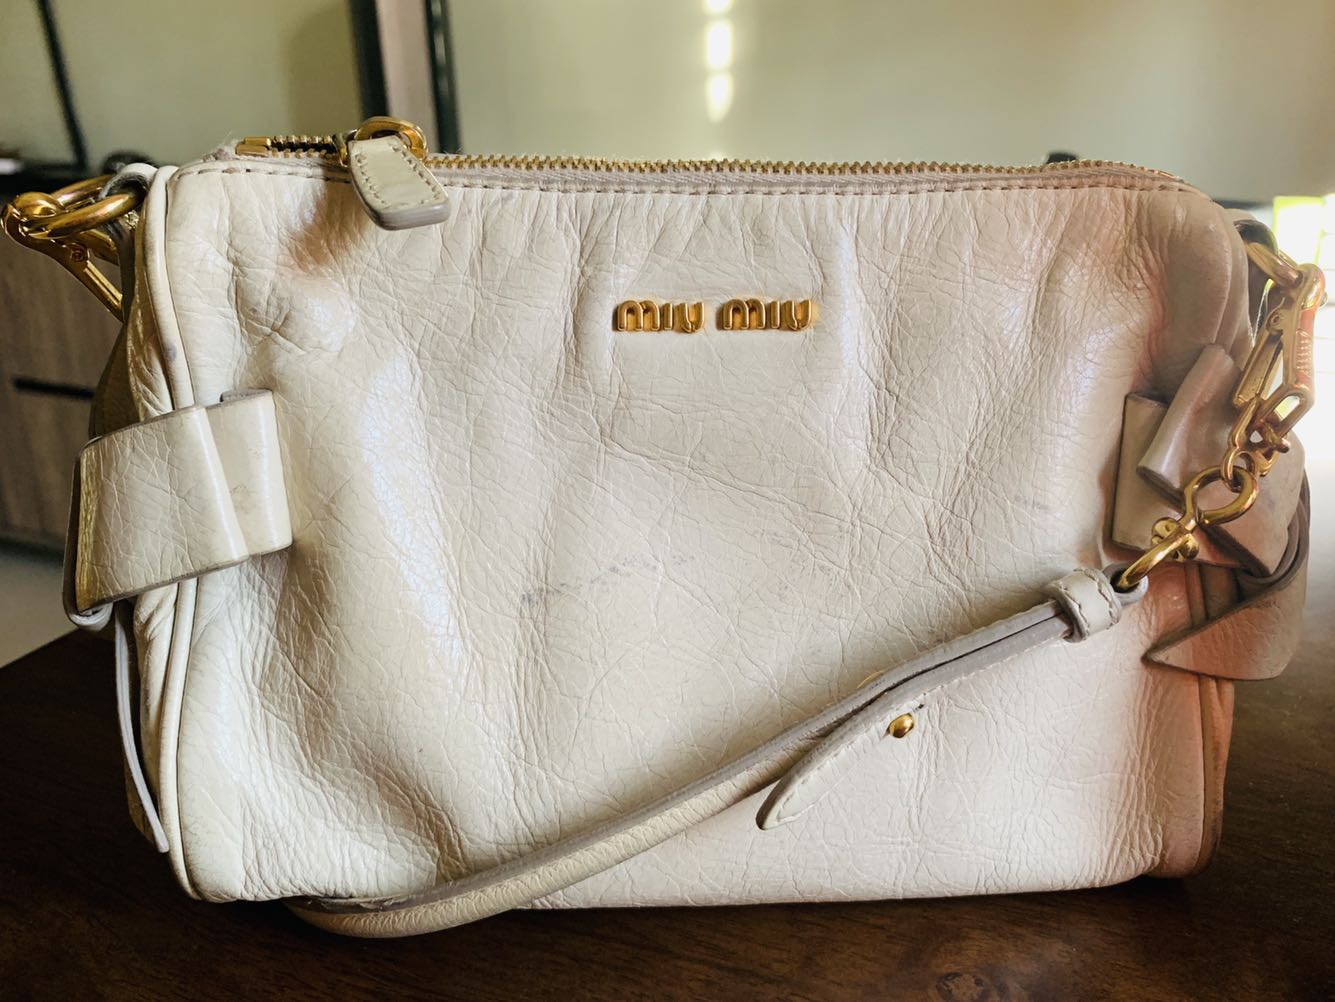 25d65a2bff75 Original Miu Miu by Prada Bag - Repriced